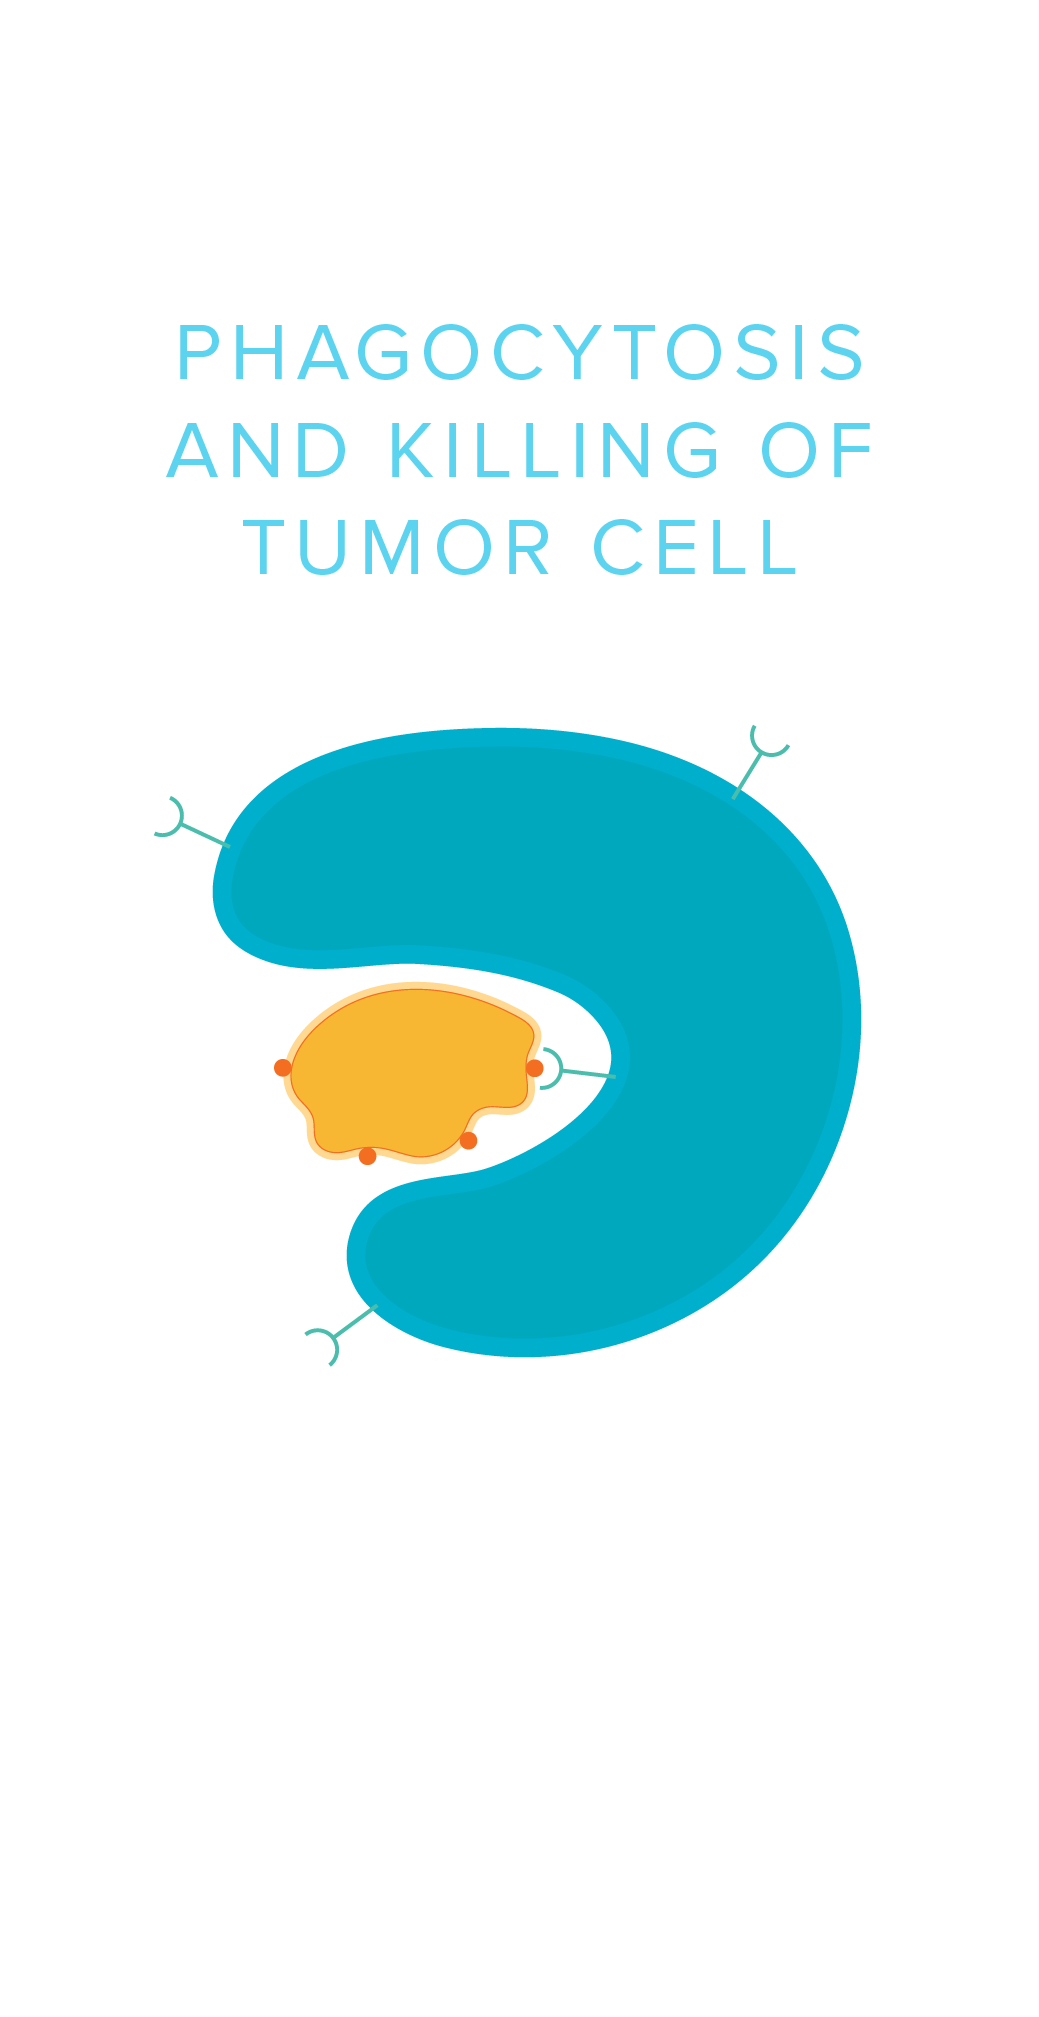 Phagocytosis and Killing of Tumor Cell